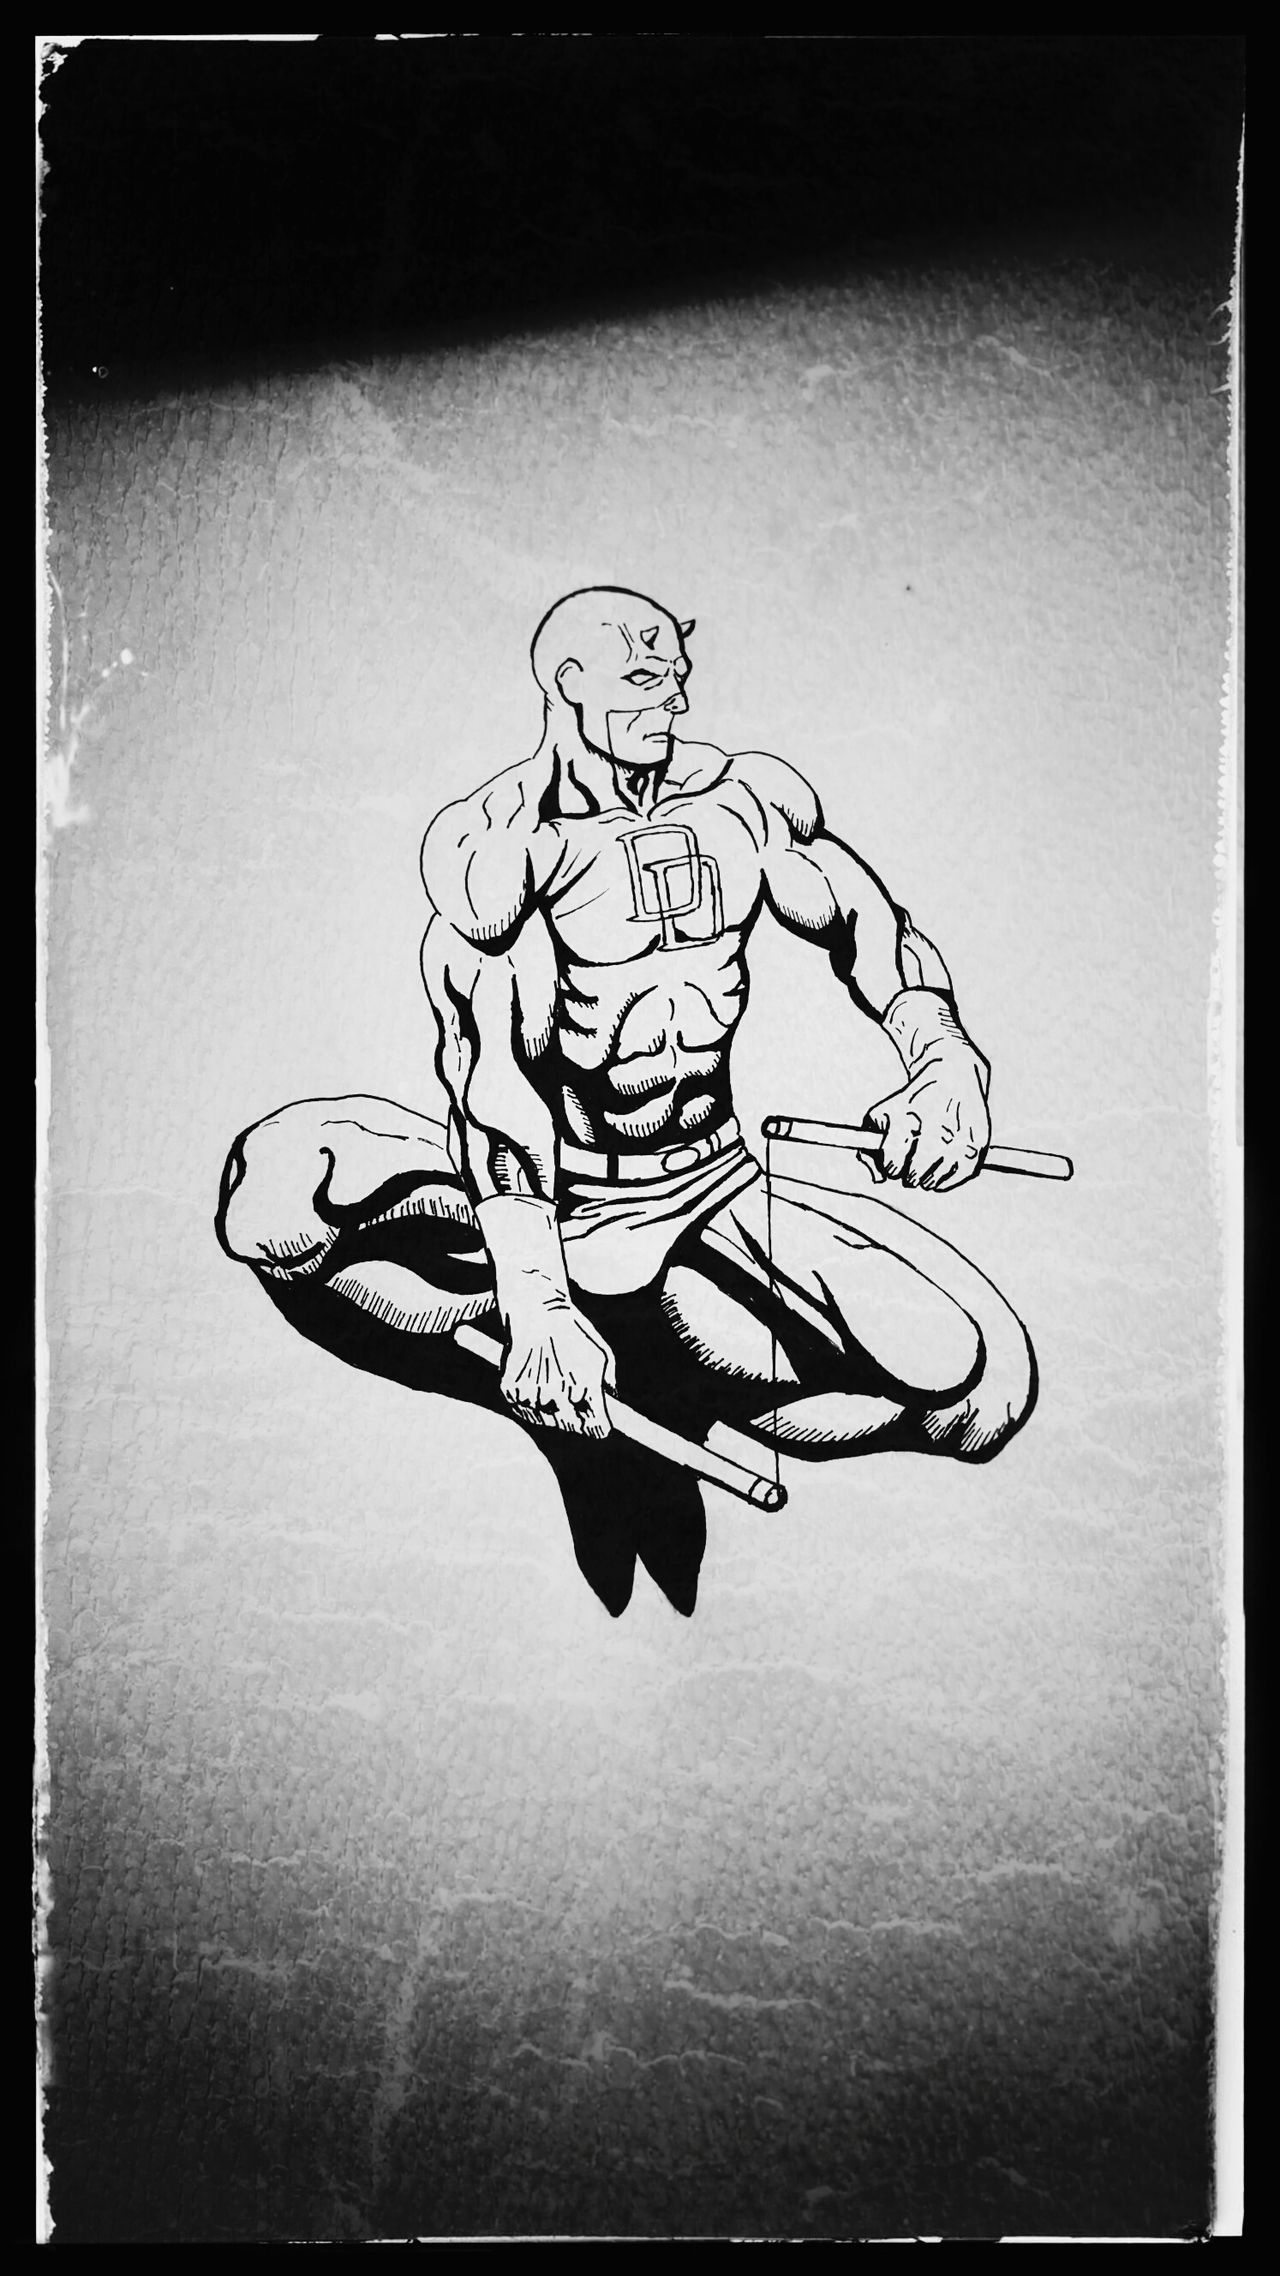 A sketch of Daredevil. Drawing - Art Product Sketch ArtWork Art Sketchbook Drawing Daredevil Netflix Marvel Marvel Comics Blackandwhite Nocolorneeded No People Indoors